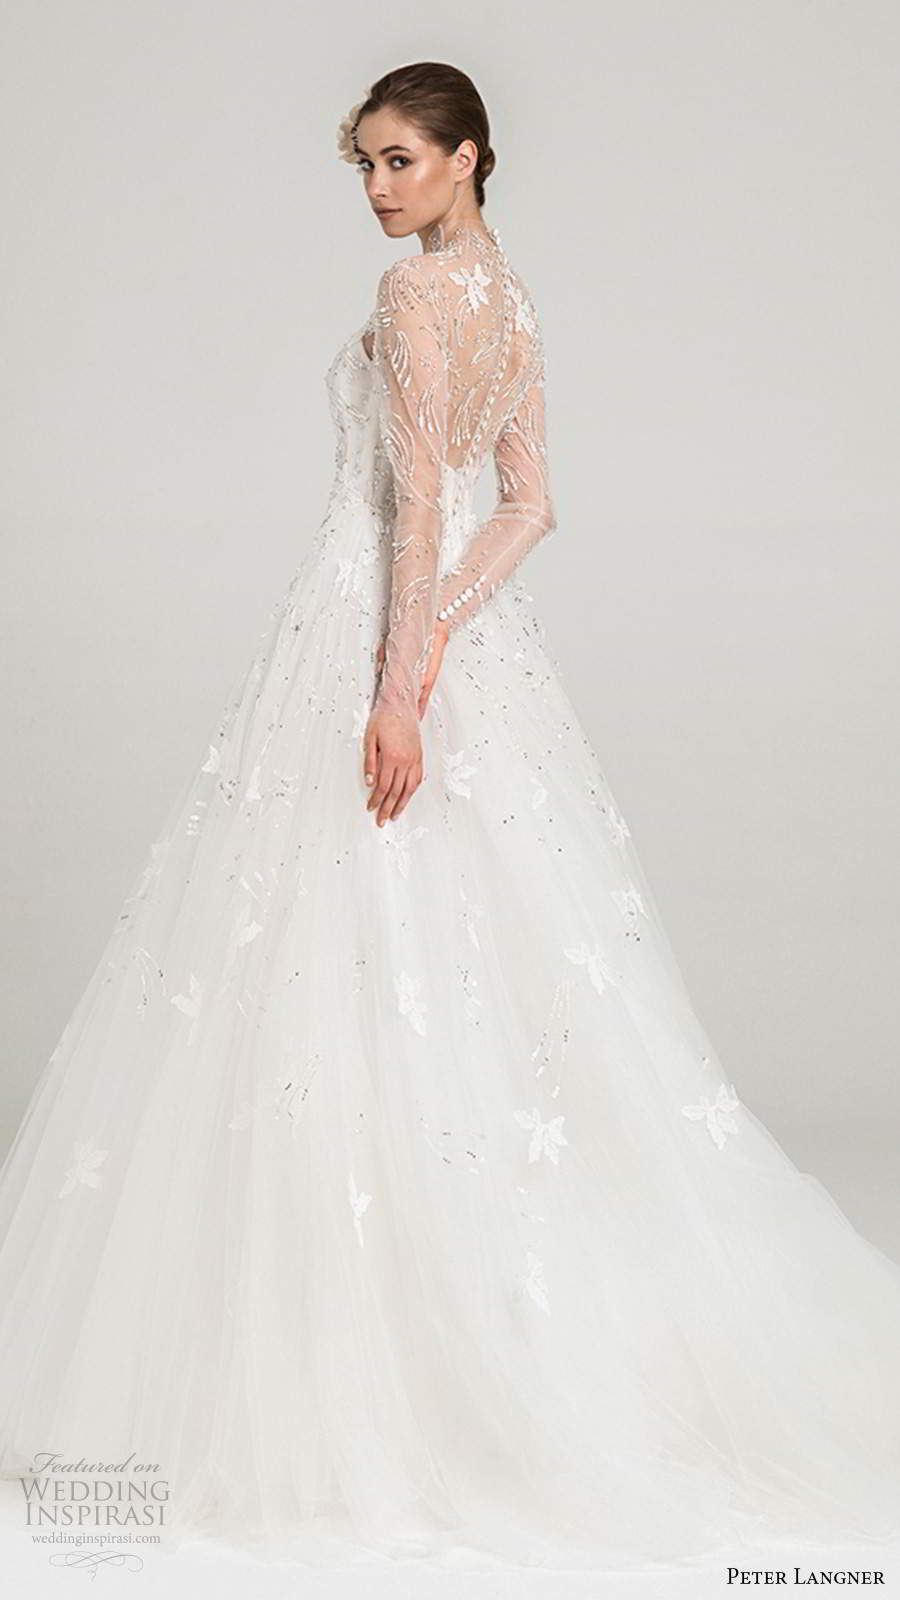 peter langner fall 2020 bridal illusion long sleeves sheer high neckline fully embellished a line ball gown wedding dress sheer back chapel train (3) bv